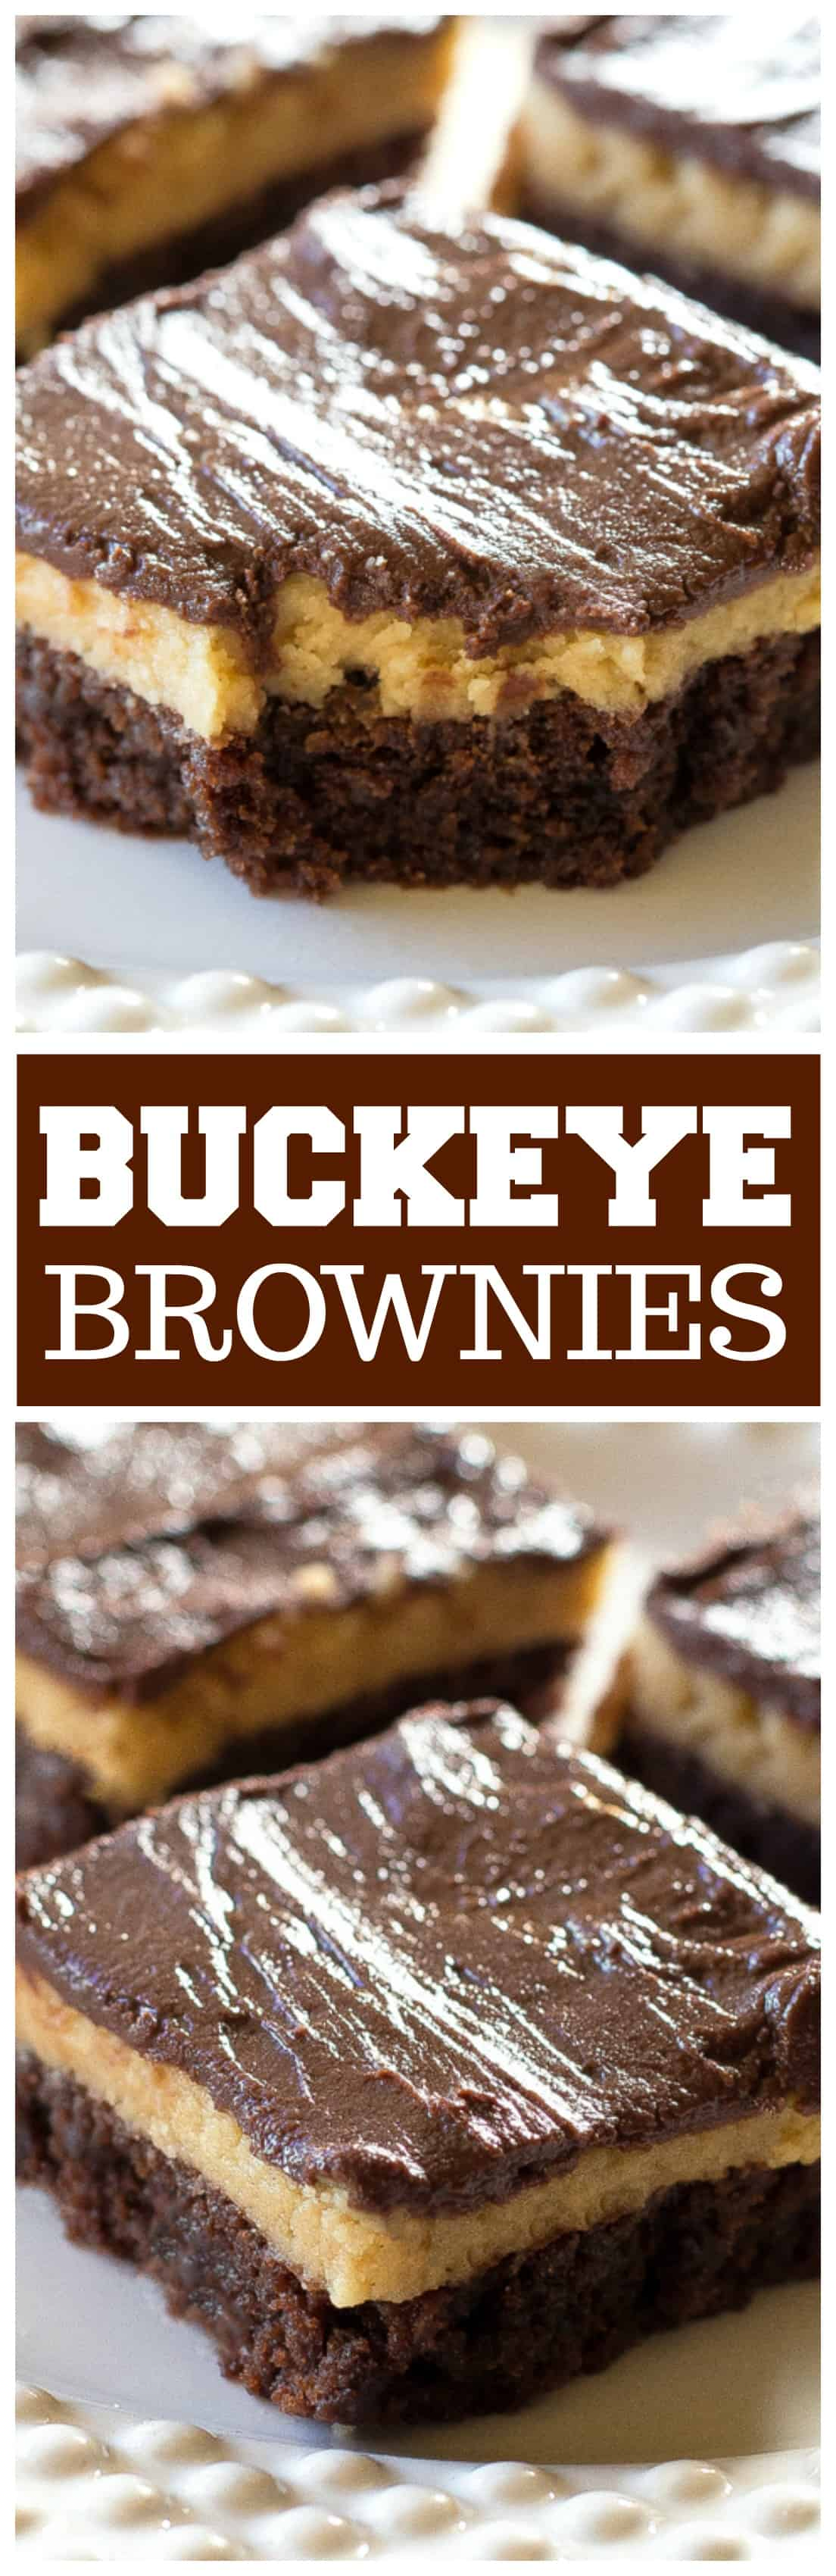 Buckeye Brownies with a rich brownie layer, a creamy peanut butter layer, and topped with another chocolate layer. The ultimate indulgence! #chocolate #brownie #dessert #peanutbutter